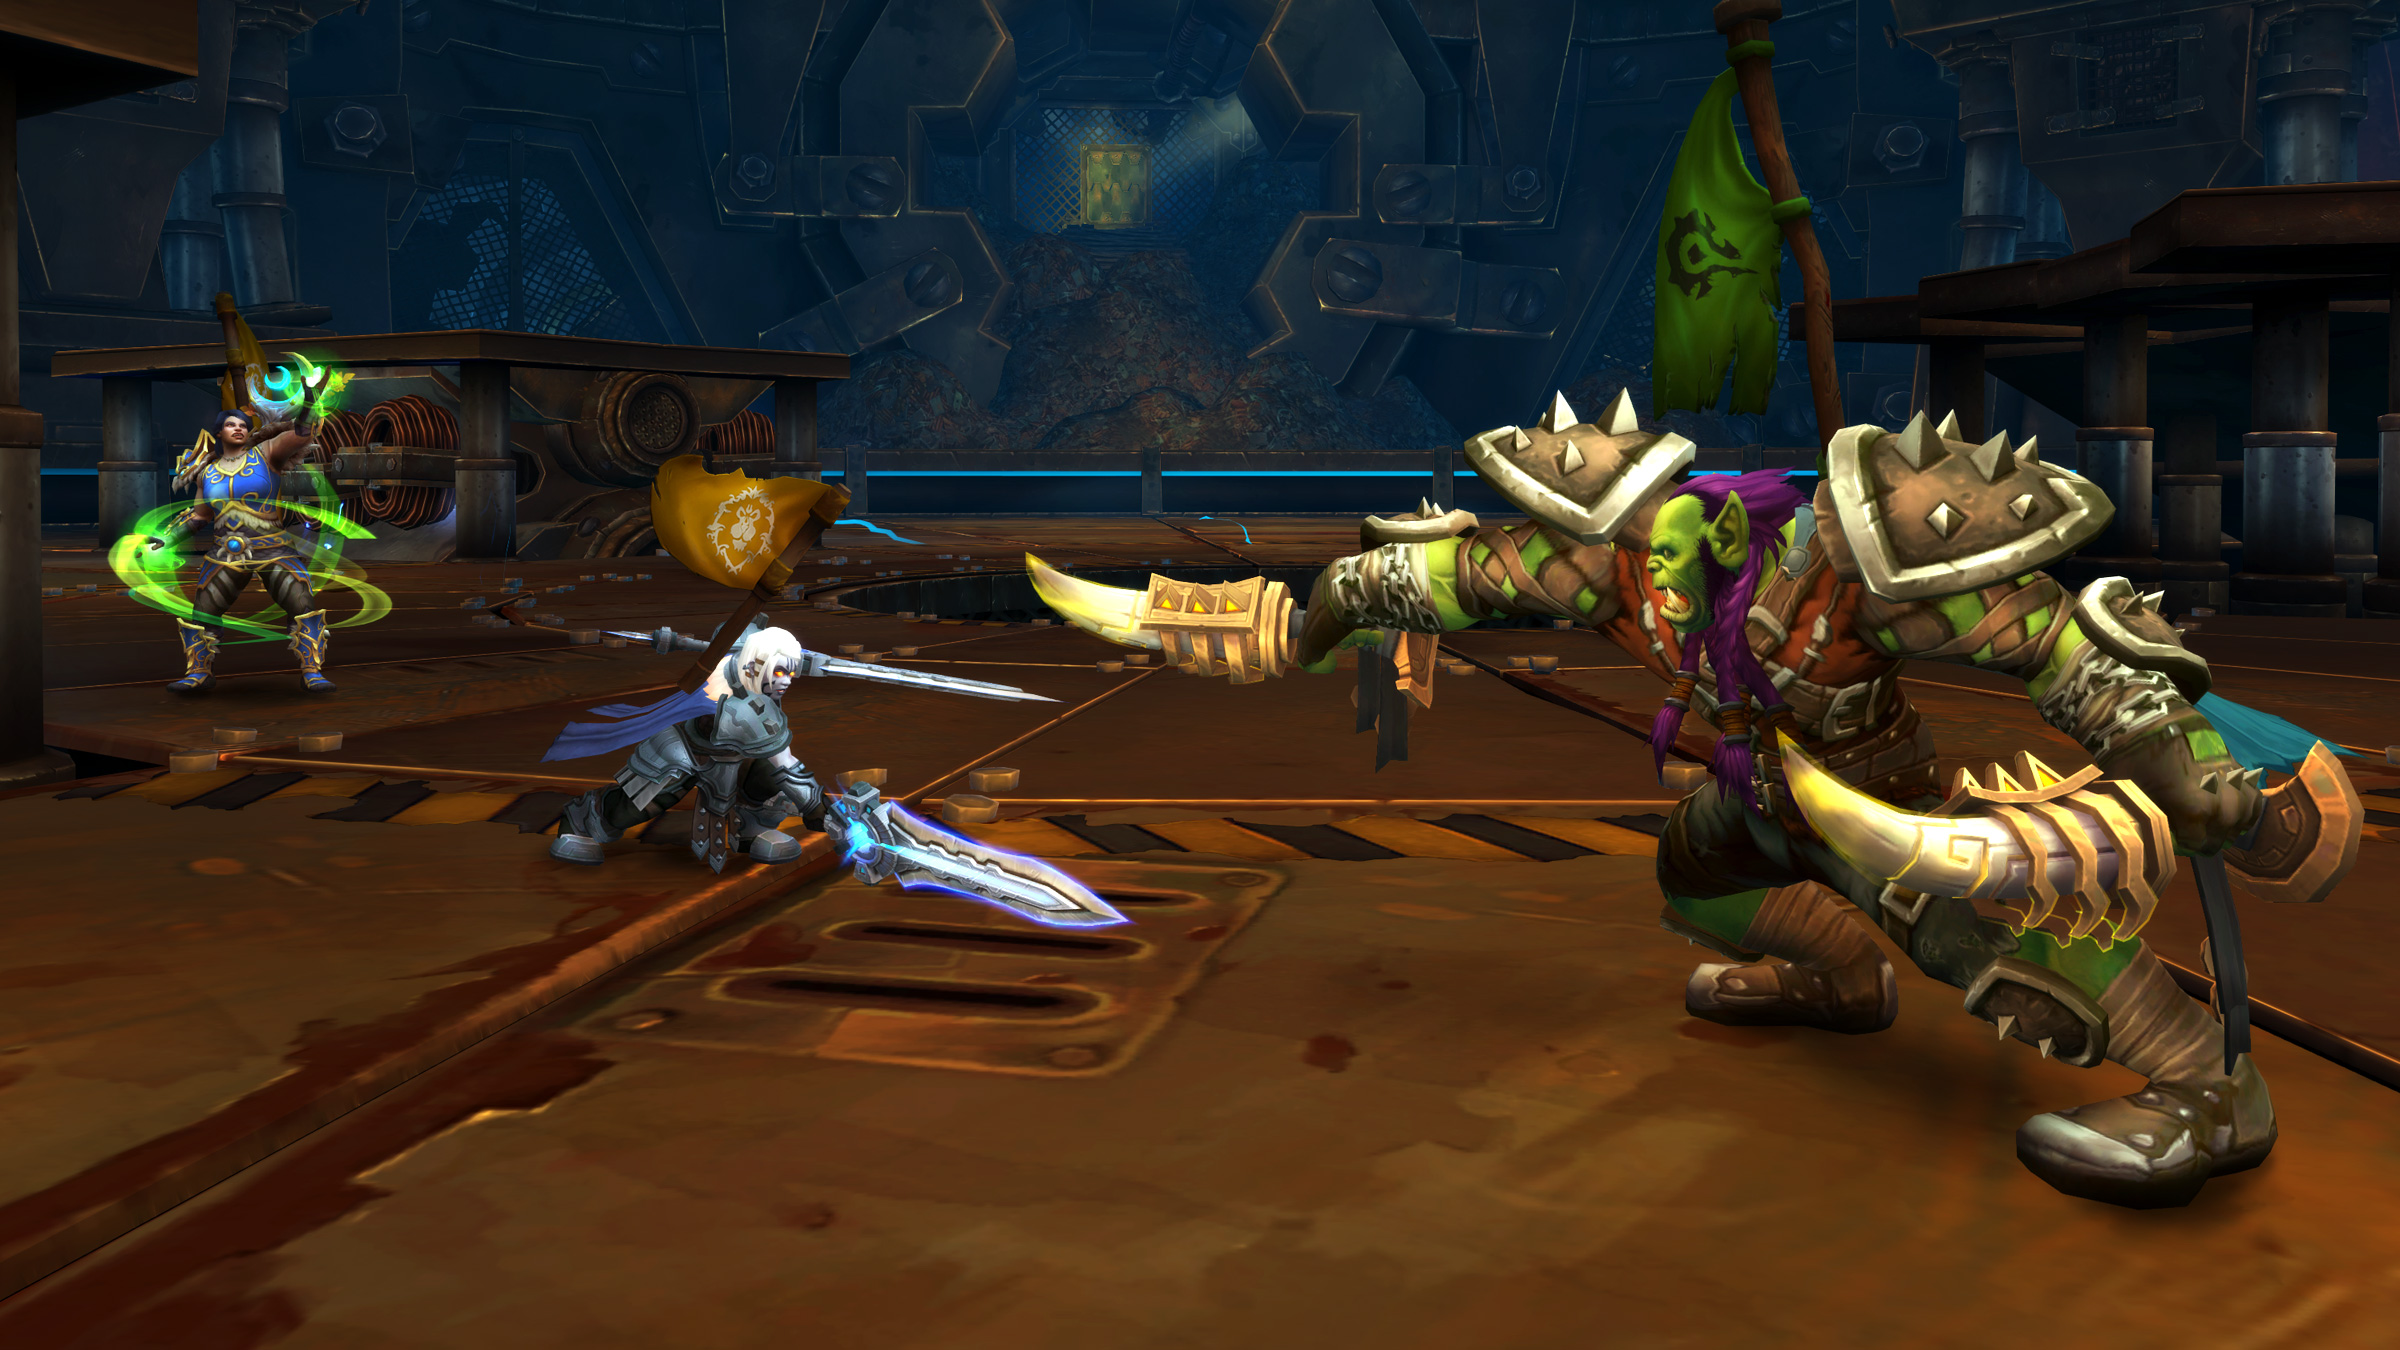 Battle for Azeroth Season 3 Has Begun! — World of Warcraft